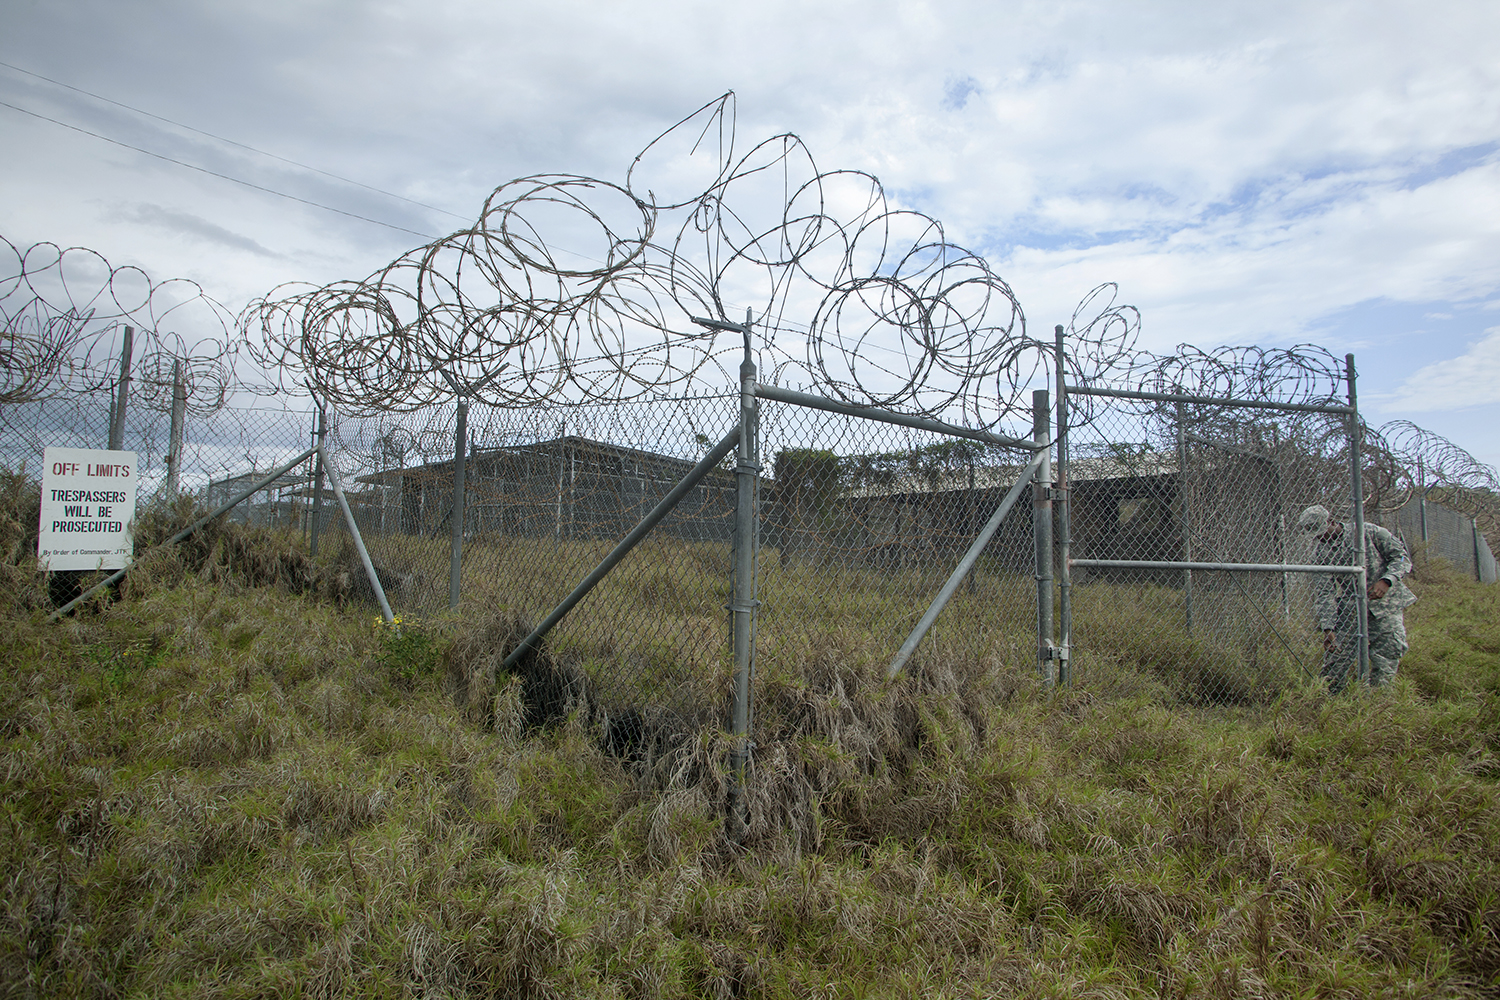 Entrance to Camp X-Ray, the most notorious detention camp  Guantanamo Bay Detention Camp Caimanera, Cuba.  2013